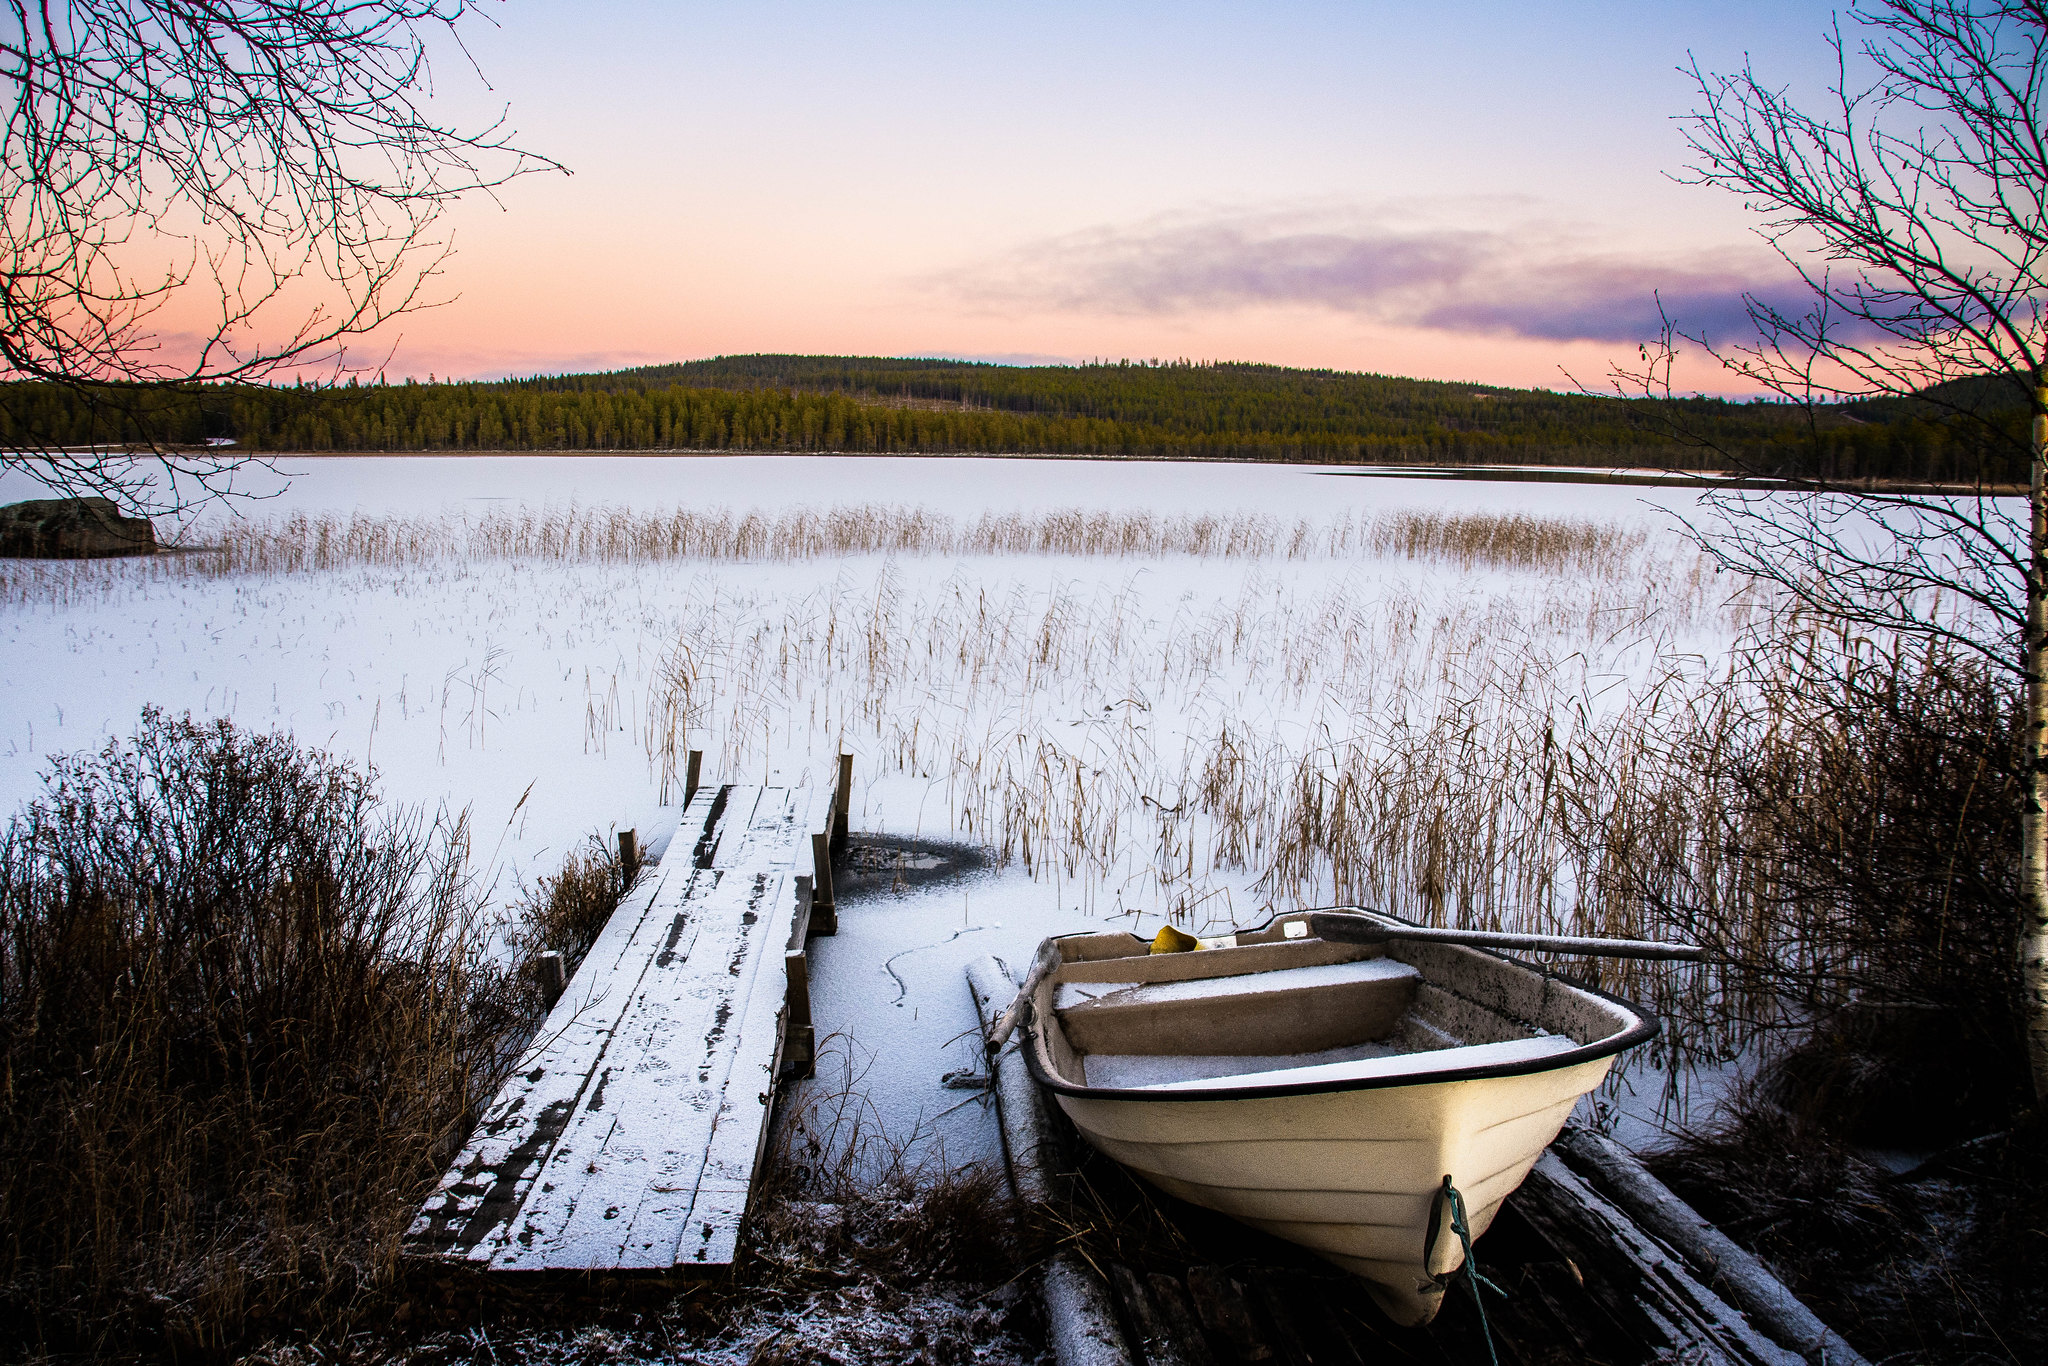 Maitum_Jokkmokk - early winters day.jpg